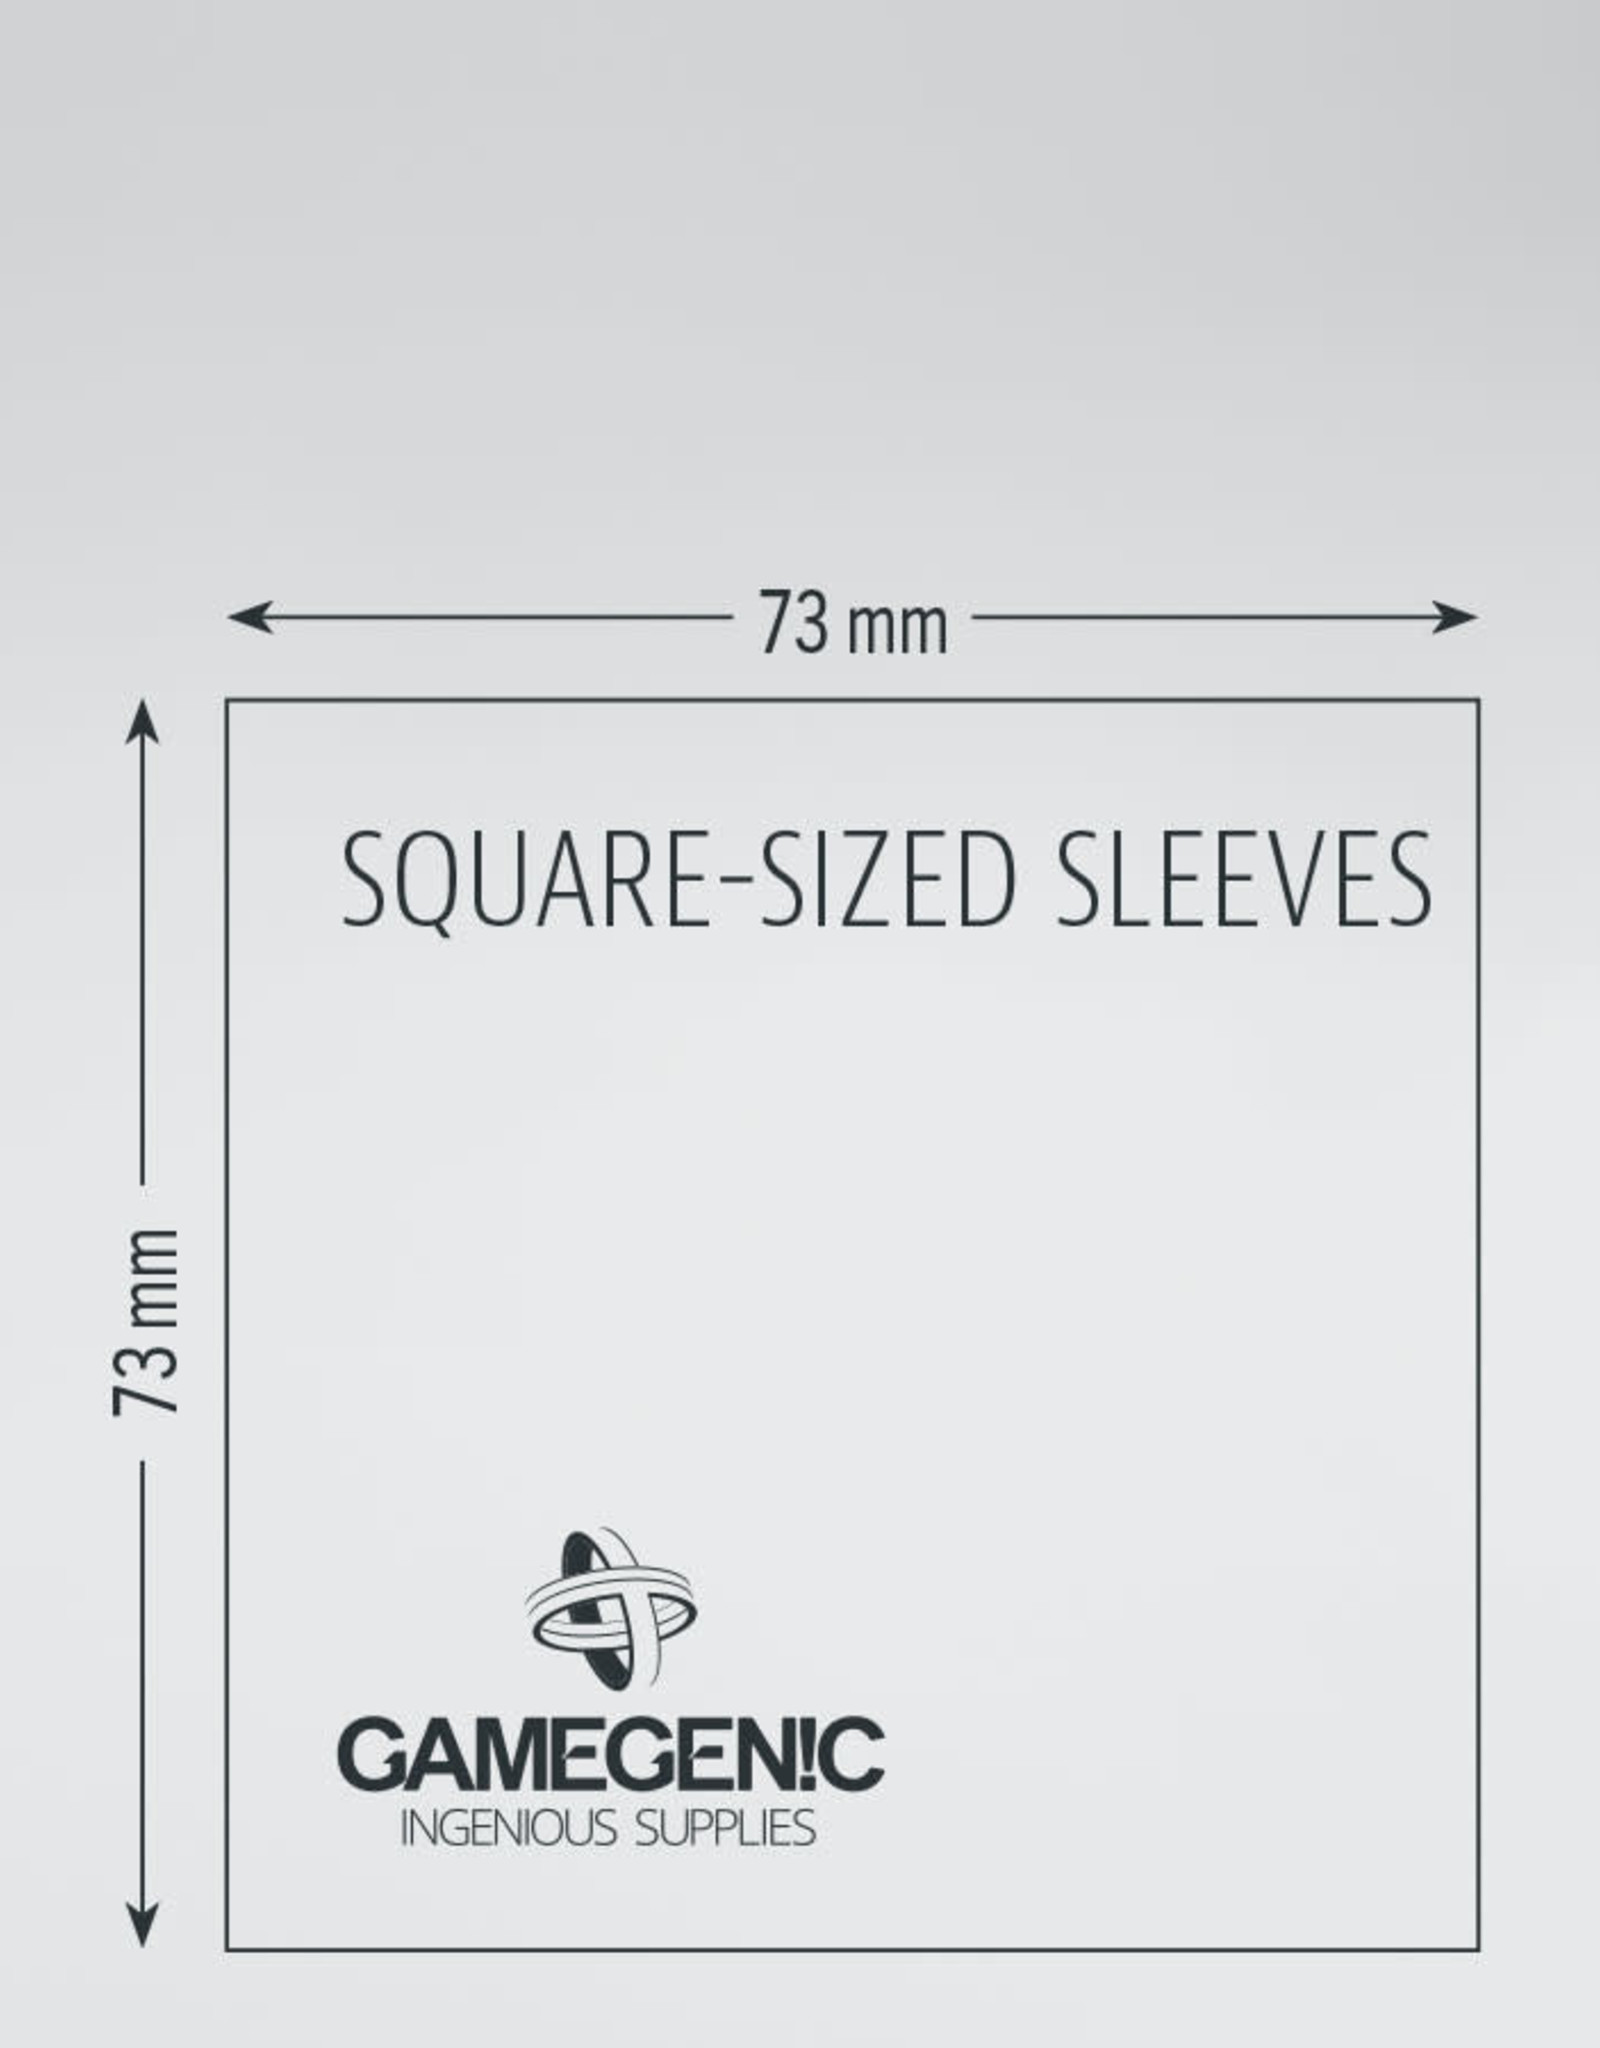 Prime Board Game Sleeves: Square-Sized 73mm x 73mm (50) (Blue)